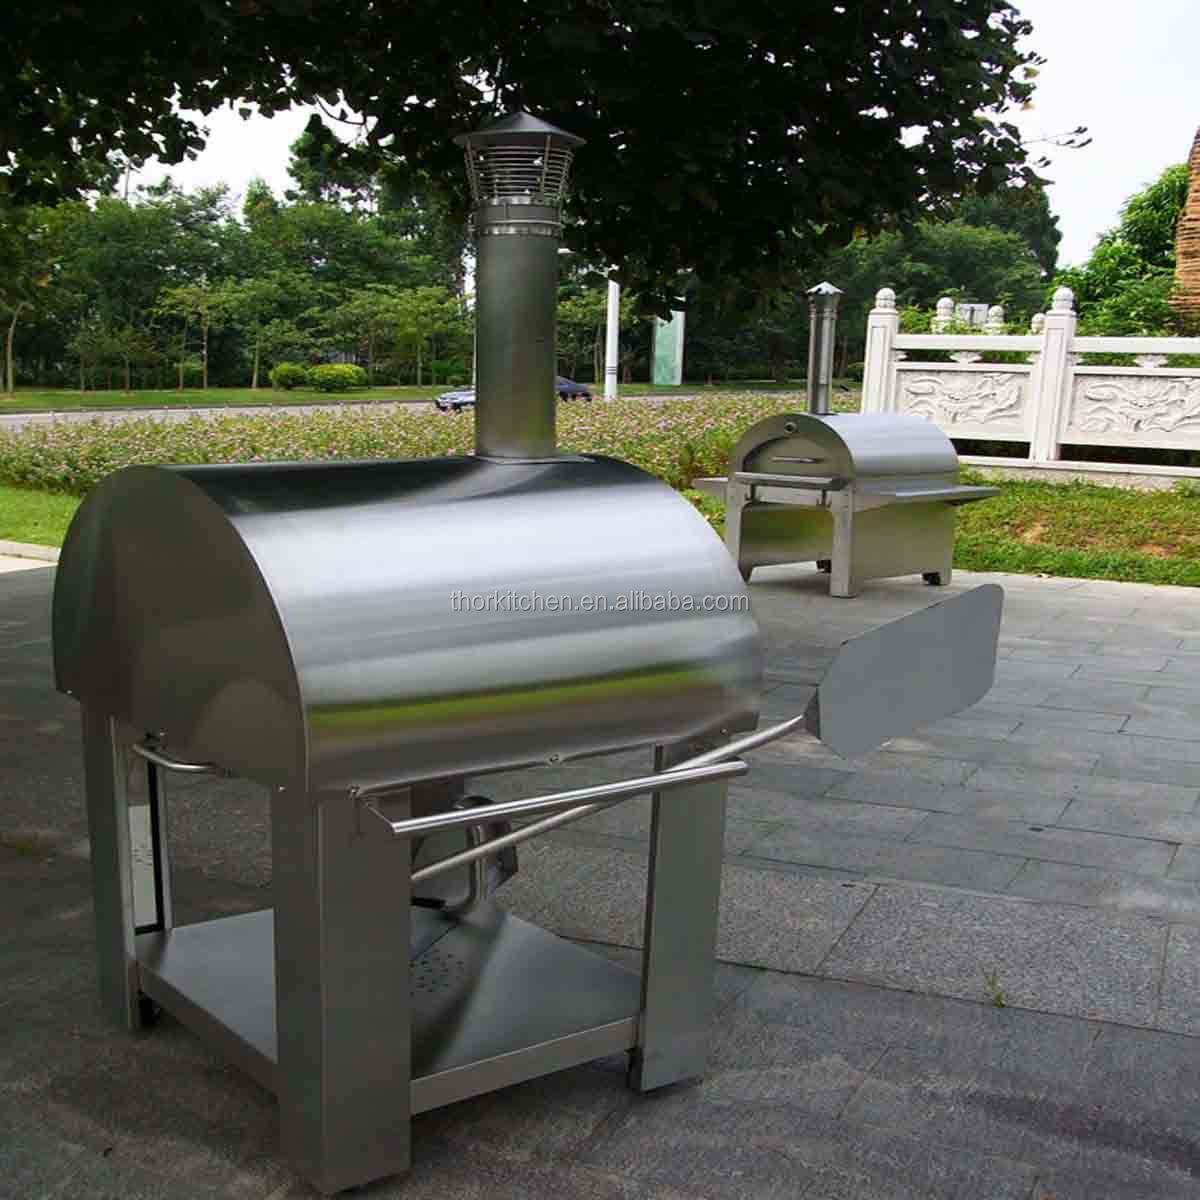 Full Stainless Steel Outdoor Oem Wood Stone Pizza Oven